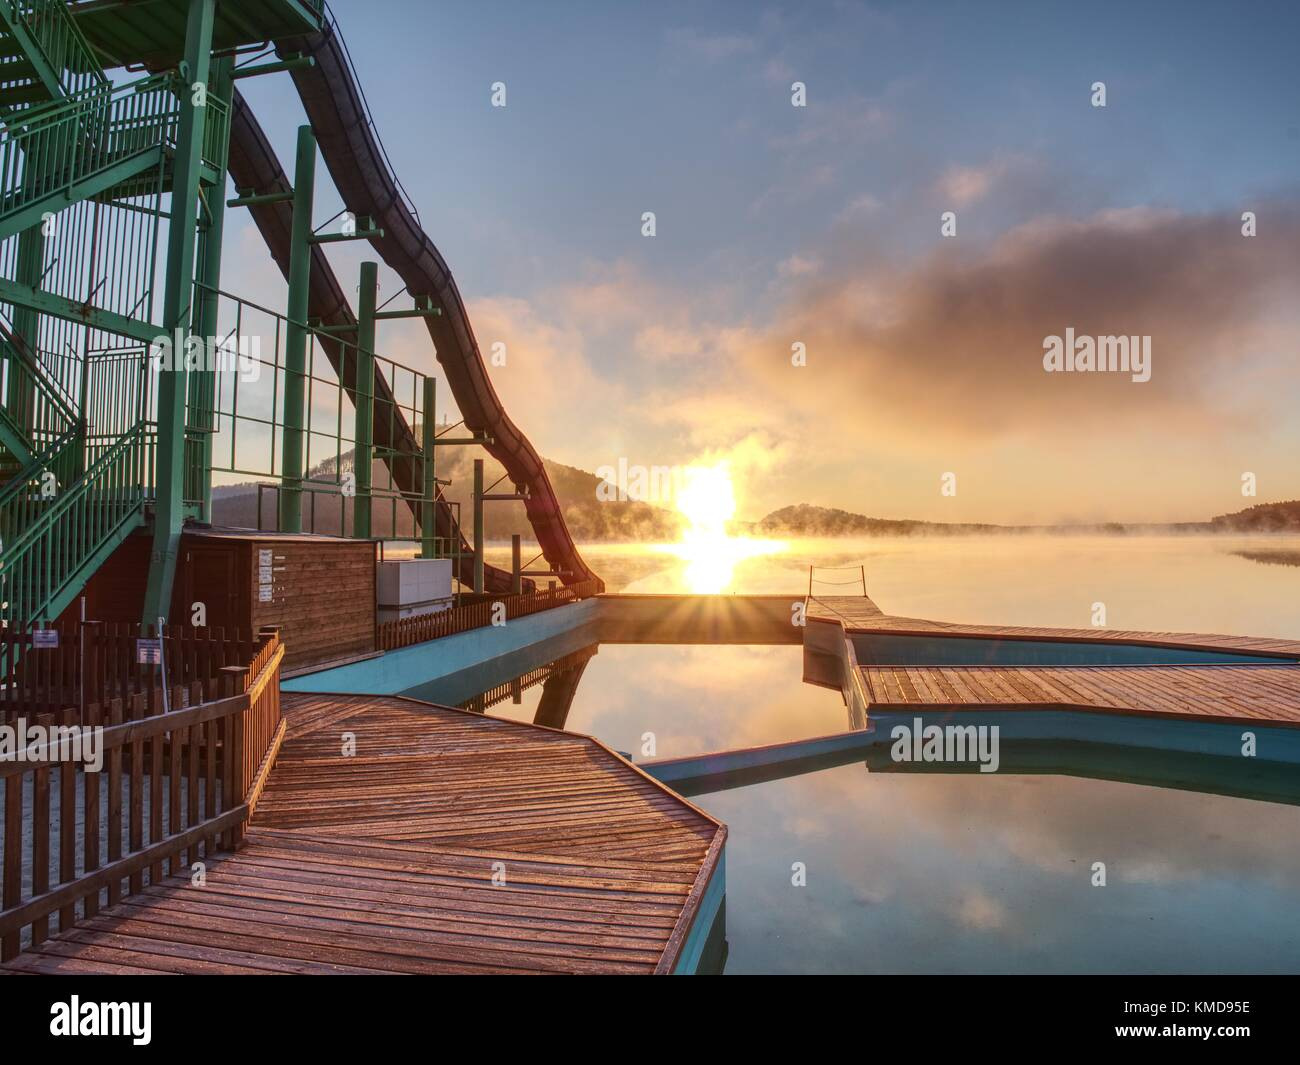 Sunset shore and toboggan slides at lake,. High ladder tower with  sliding track. Cold autumn morning with vapory Stock Photo